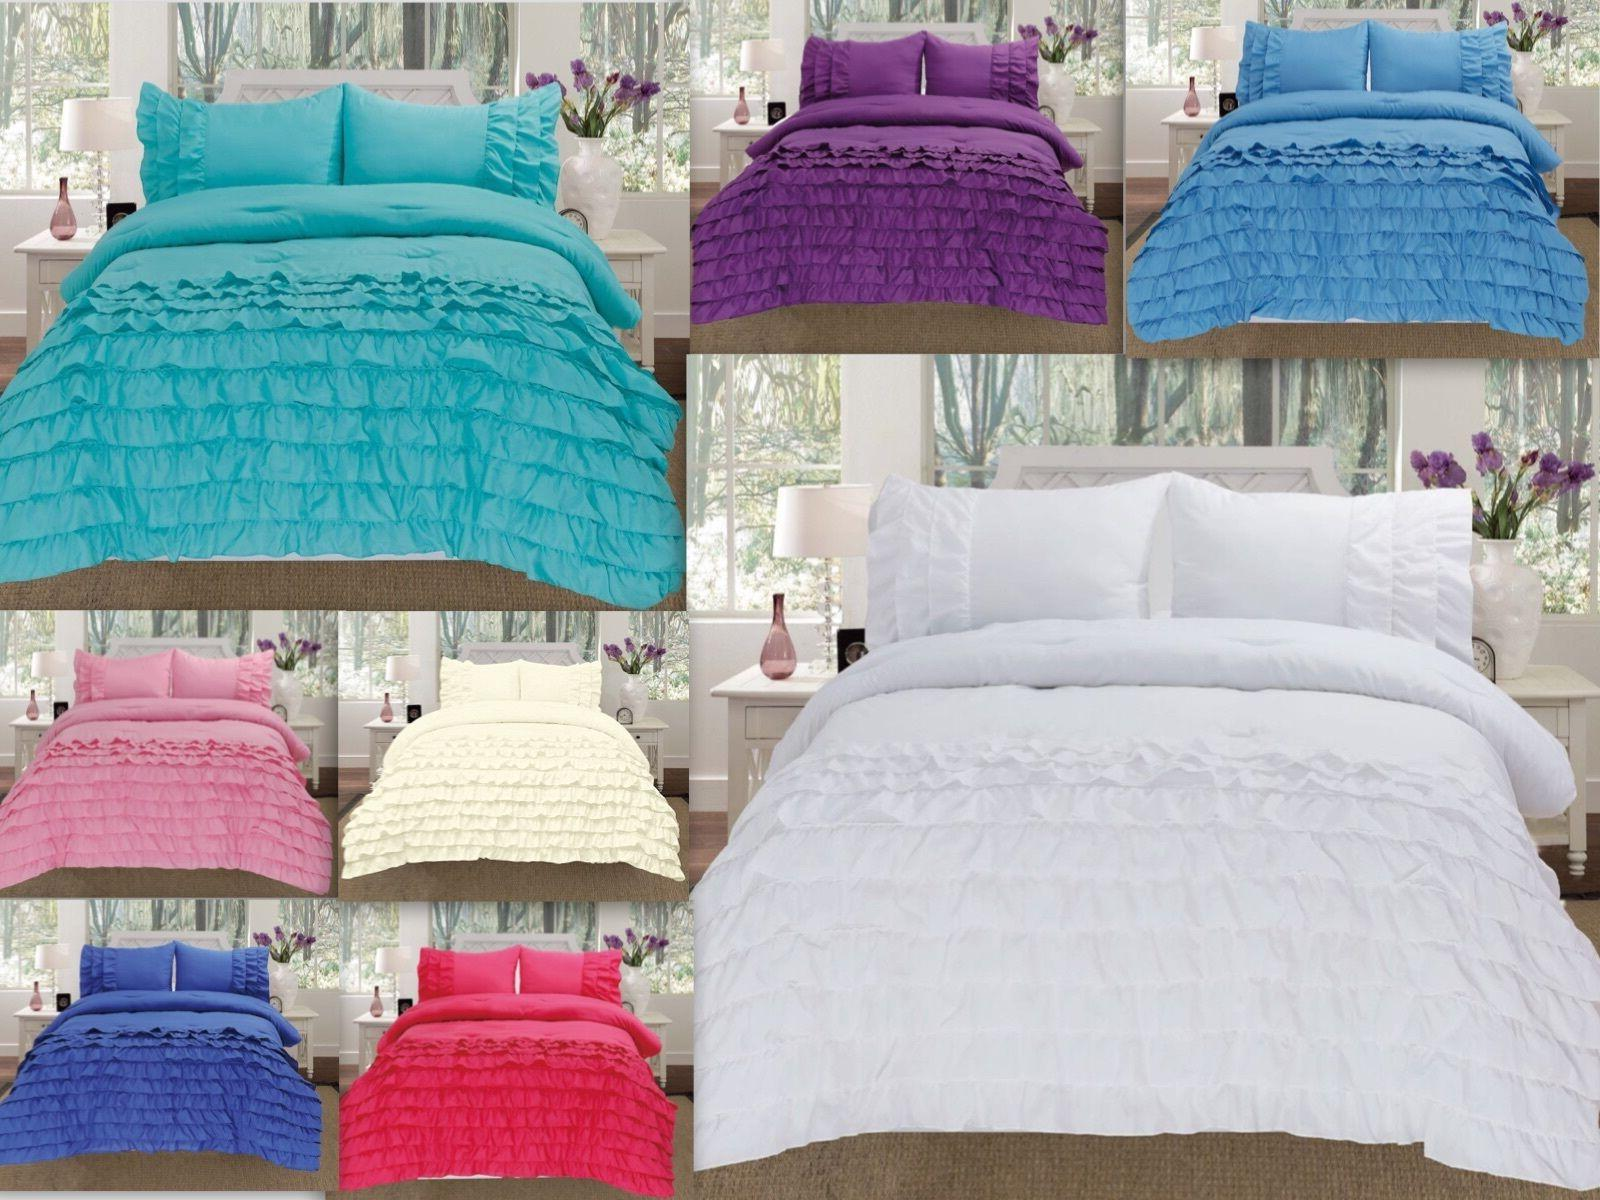 3 piece pleated ruffled soft comforter set